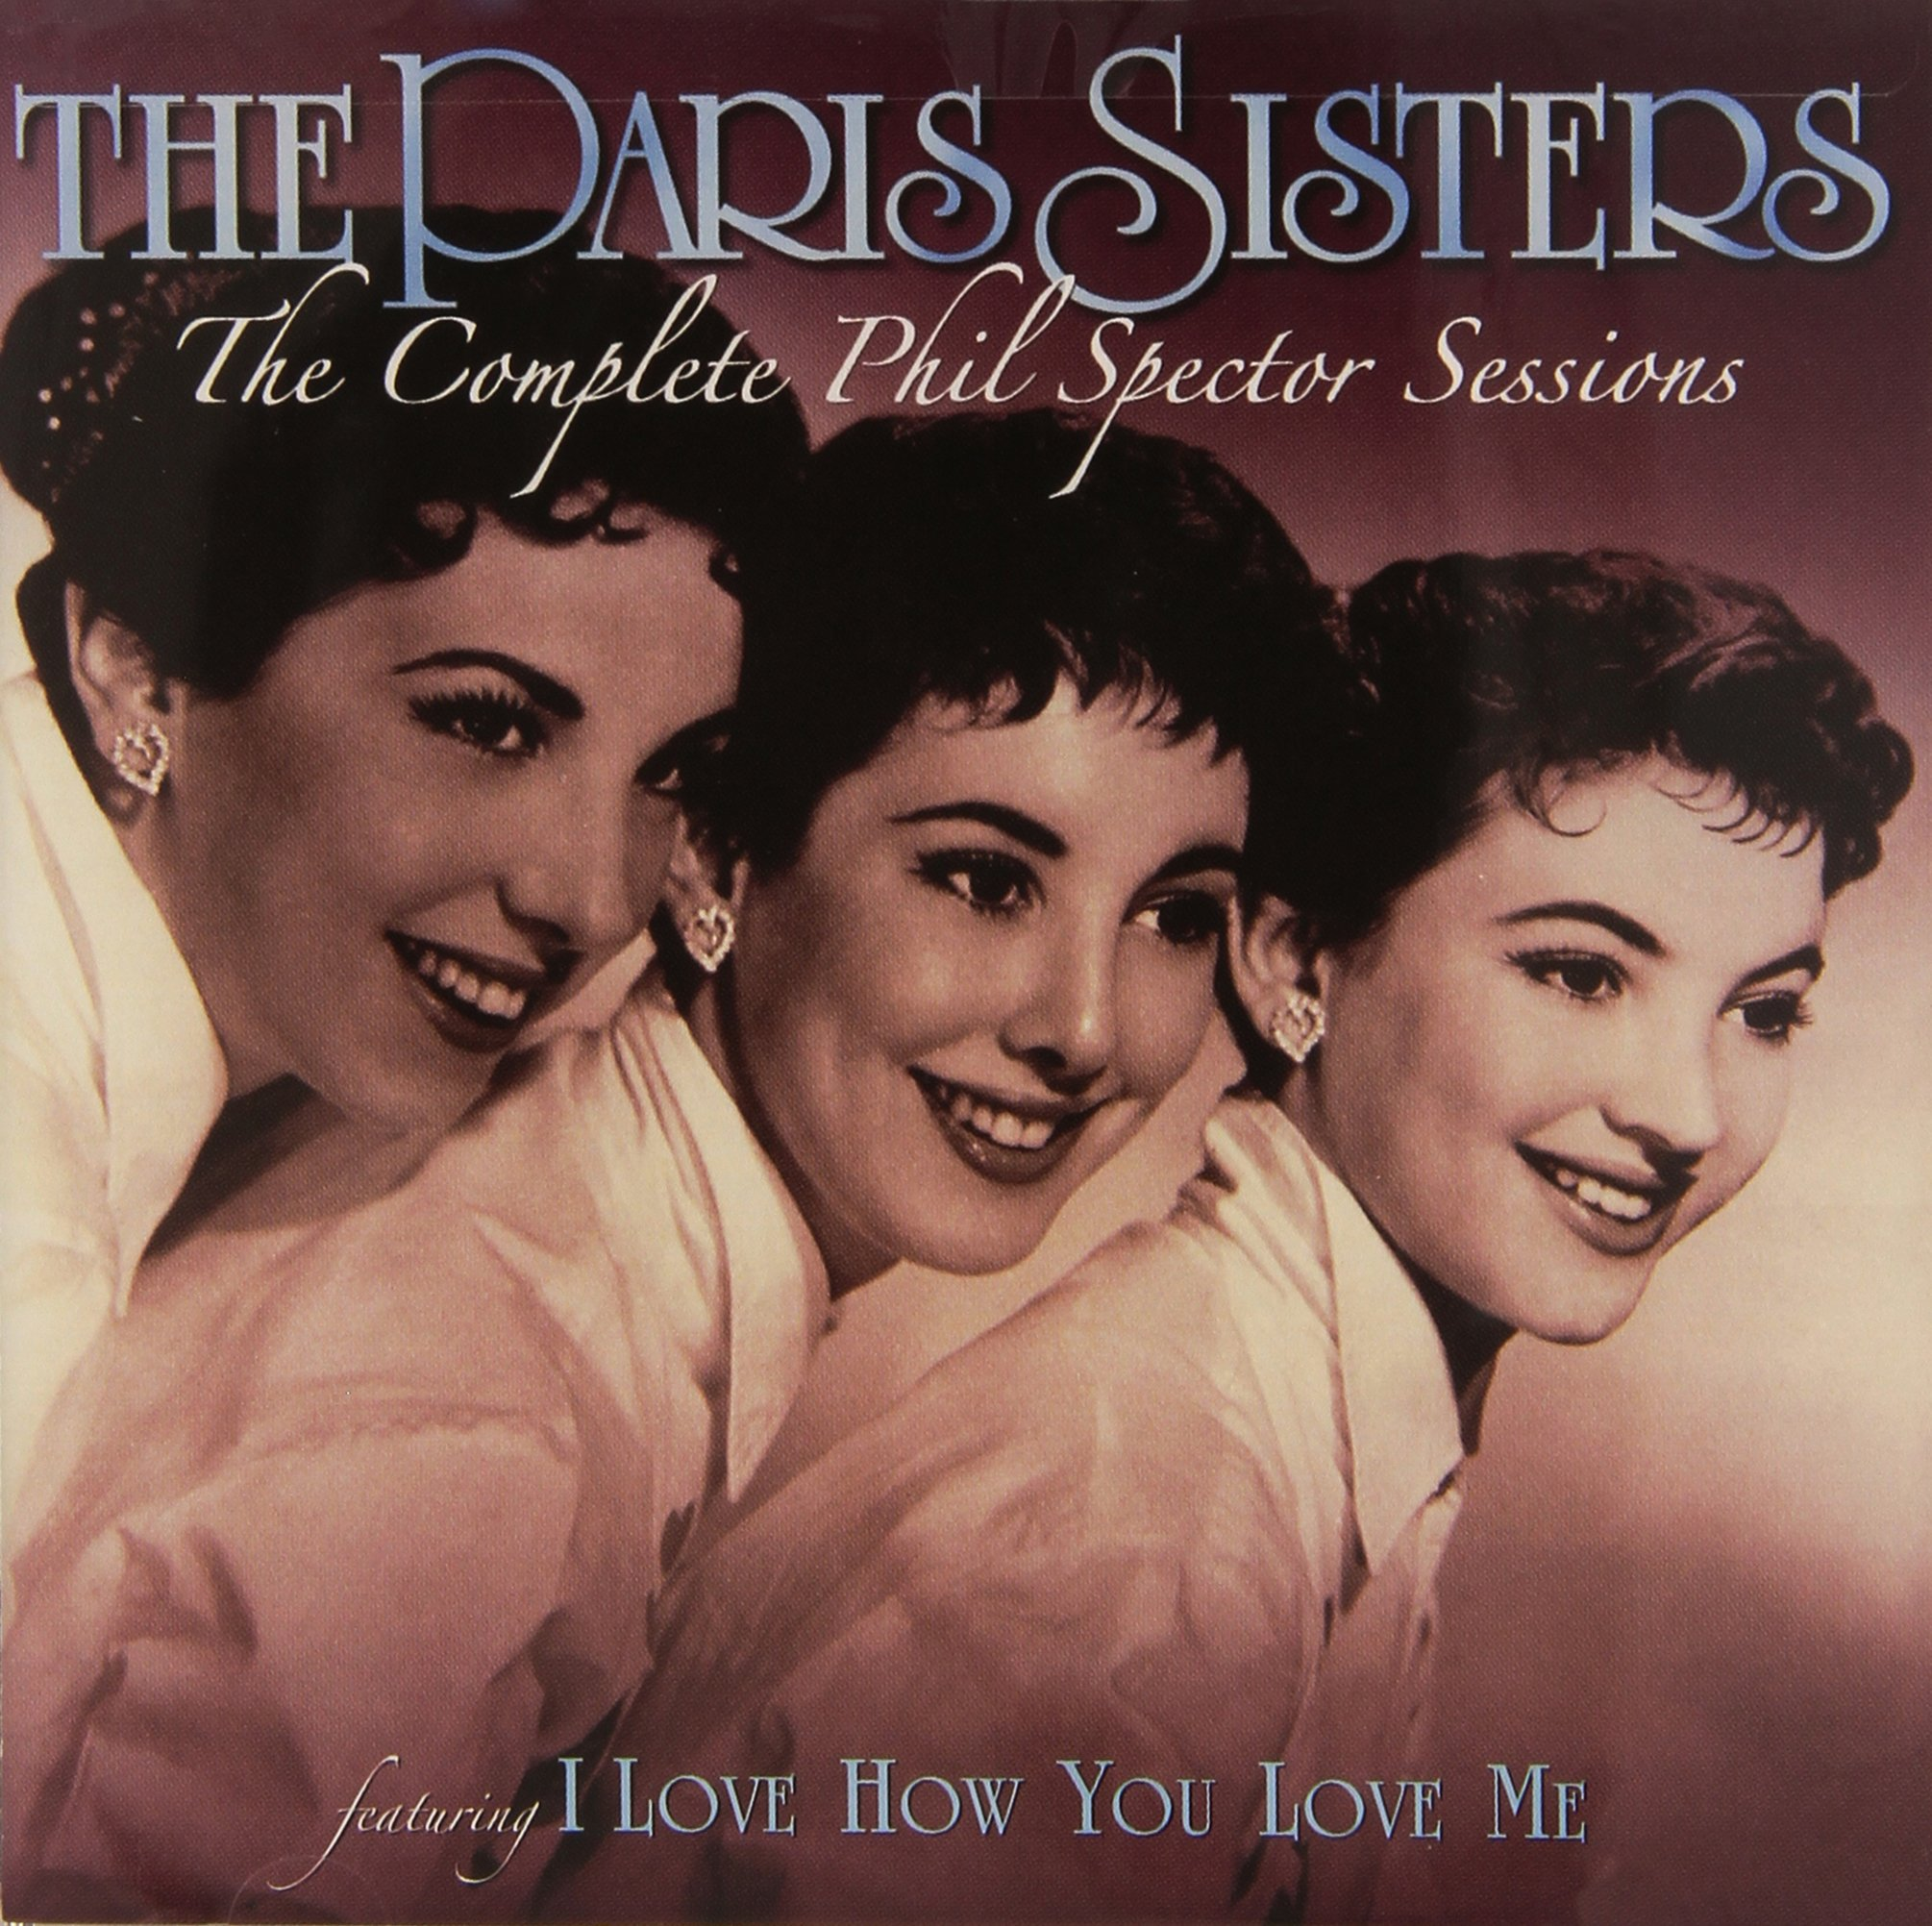 The Complete Phil Spector Sessions